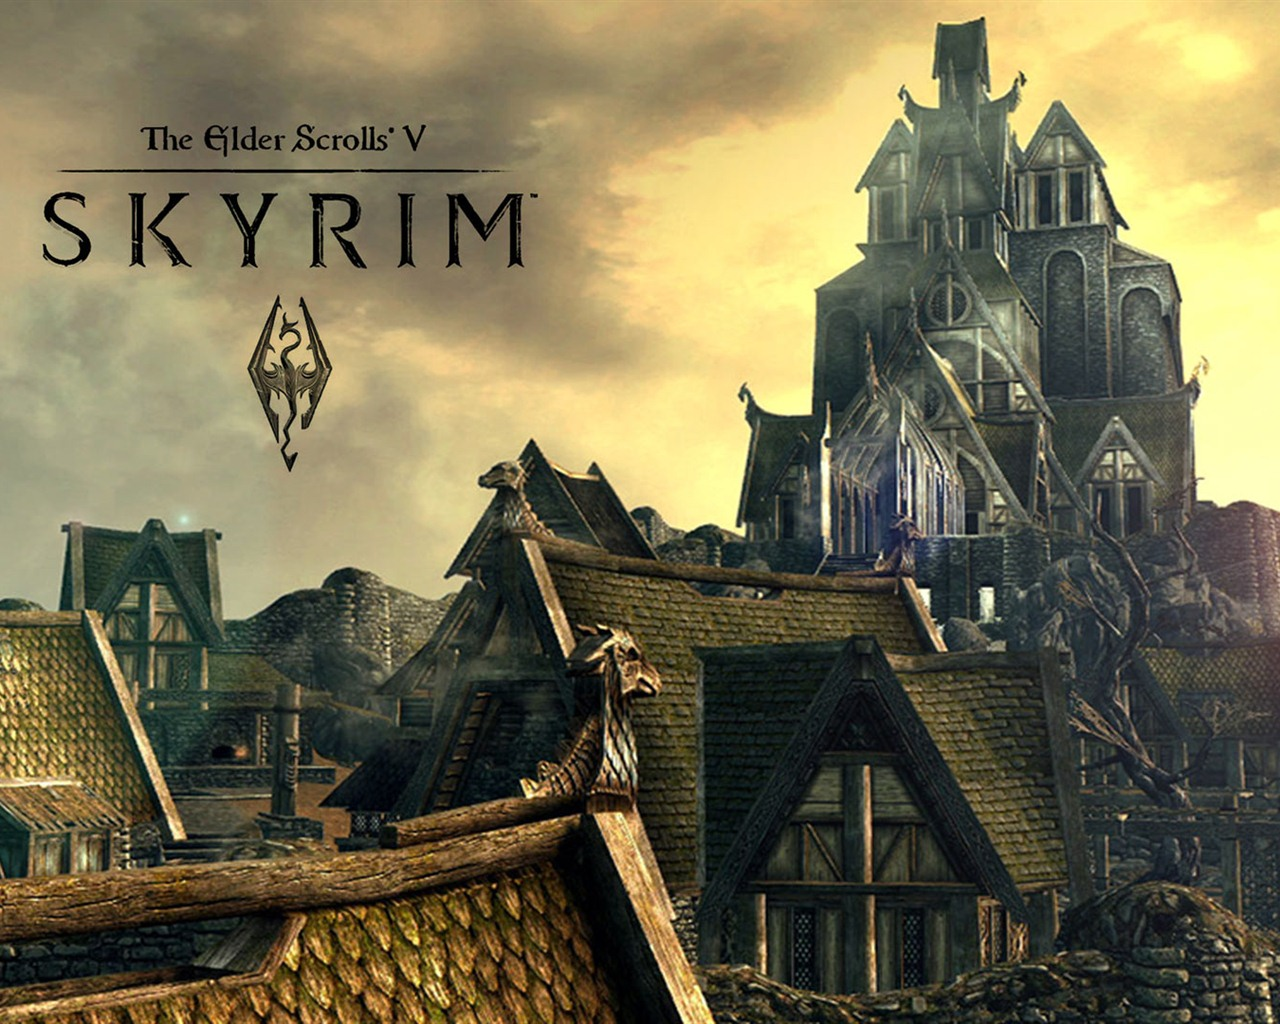 the elder scrolls v: skyrim hd wallpapers #17 - 1280x1024 wallpaper